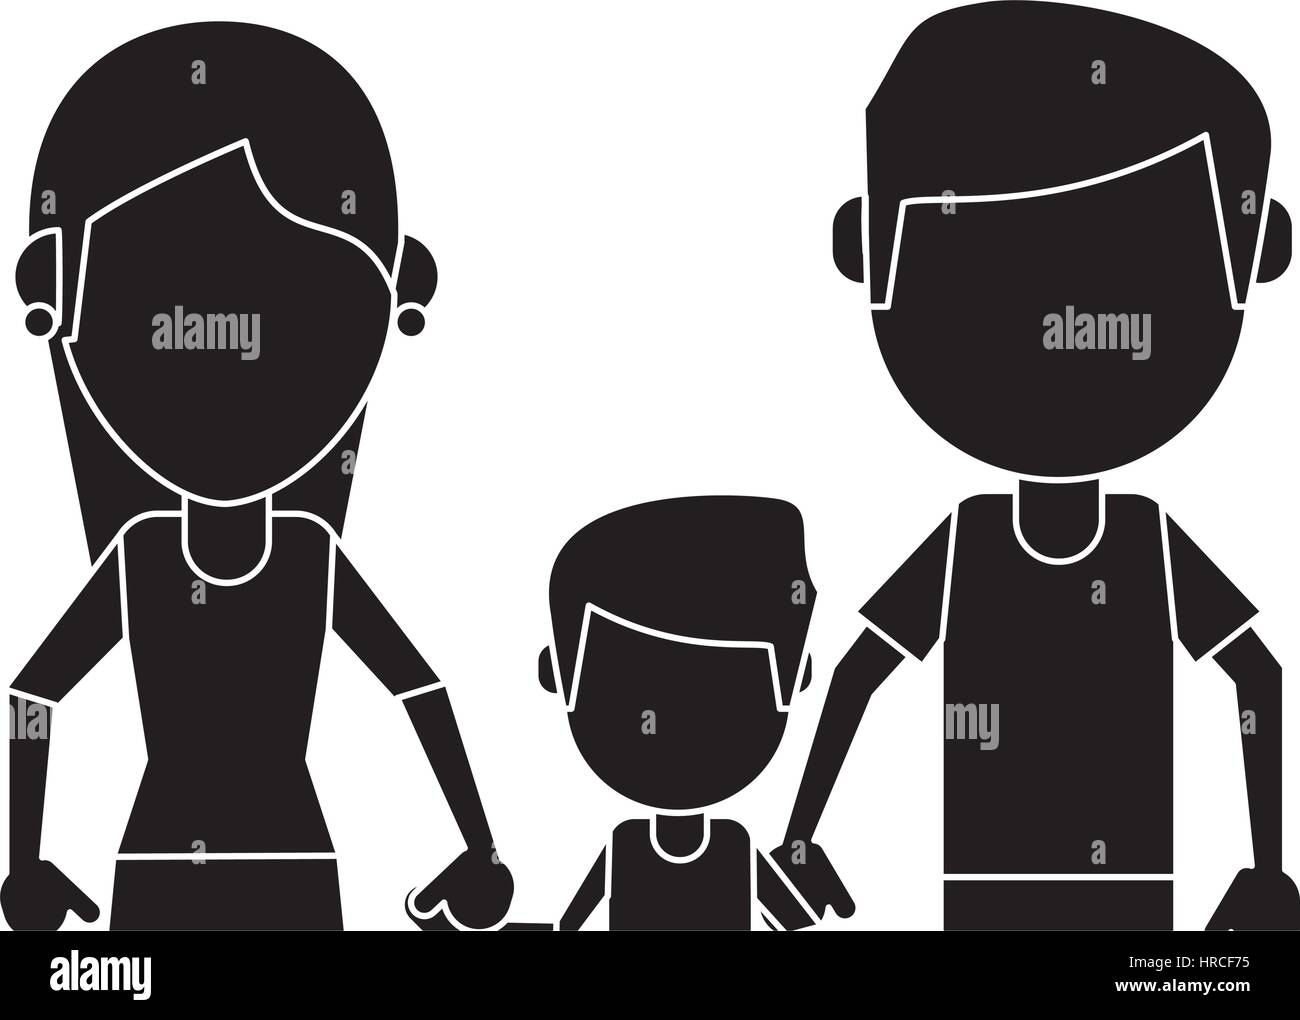 father mother and son hing hands pictogram - Stock Vector